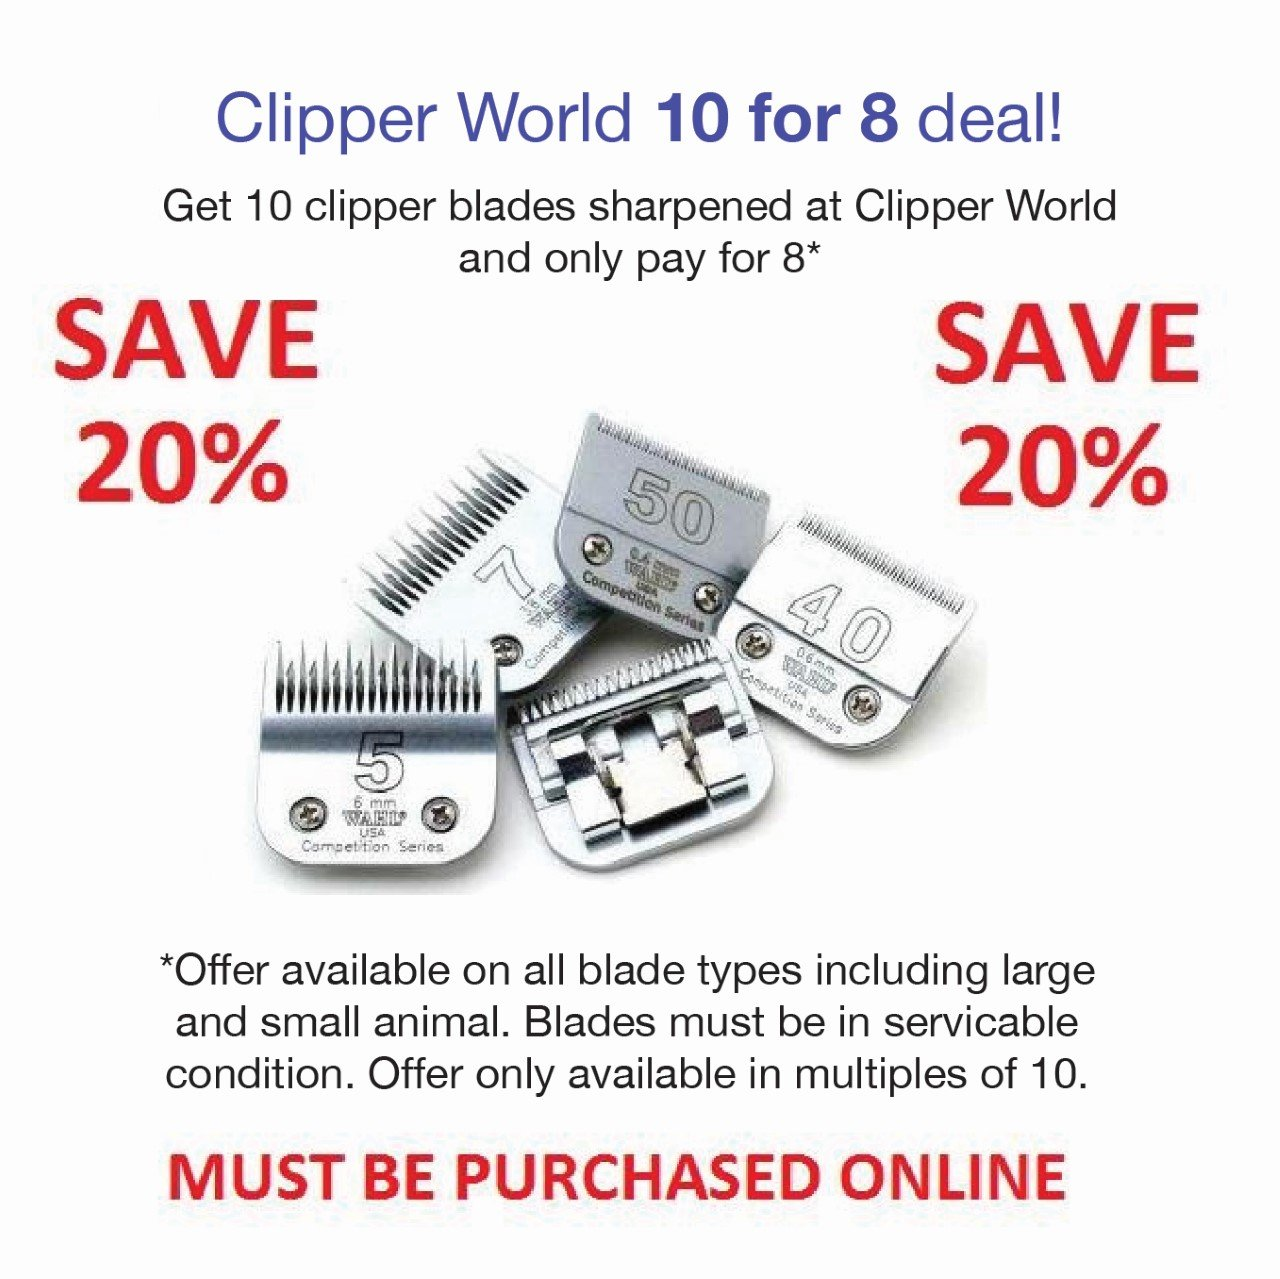 Clipper World 5 for 4 Sharpening Deal